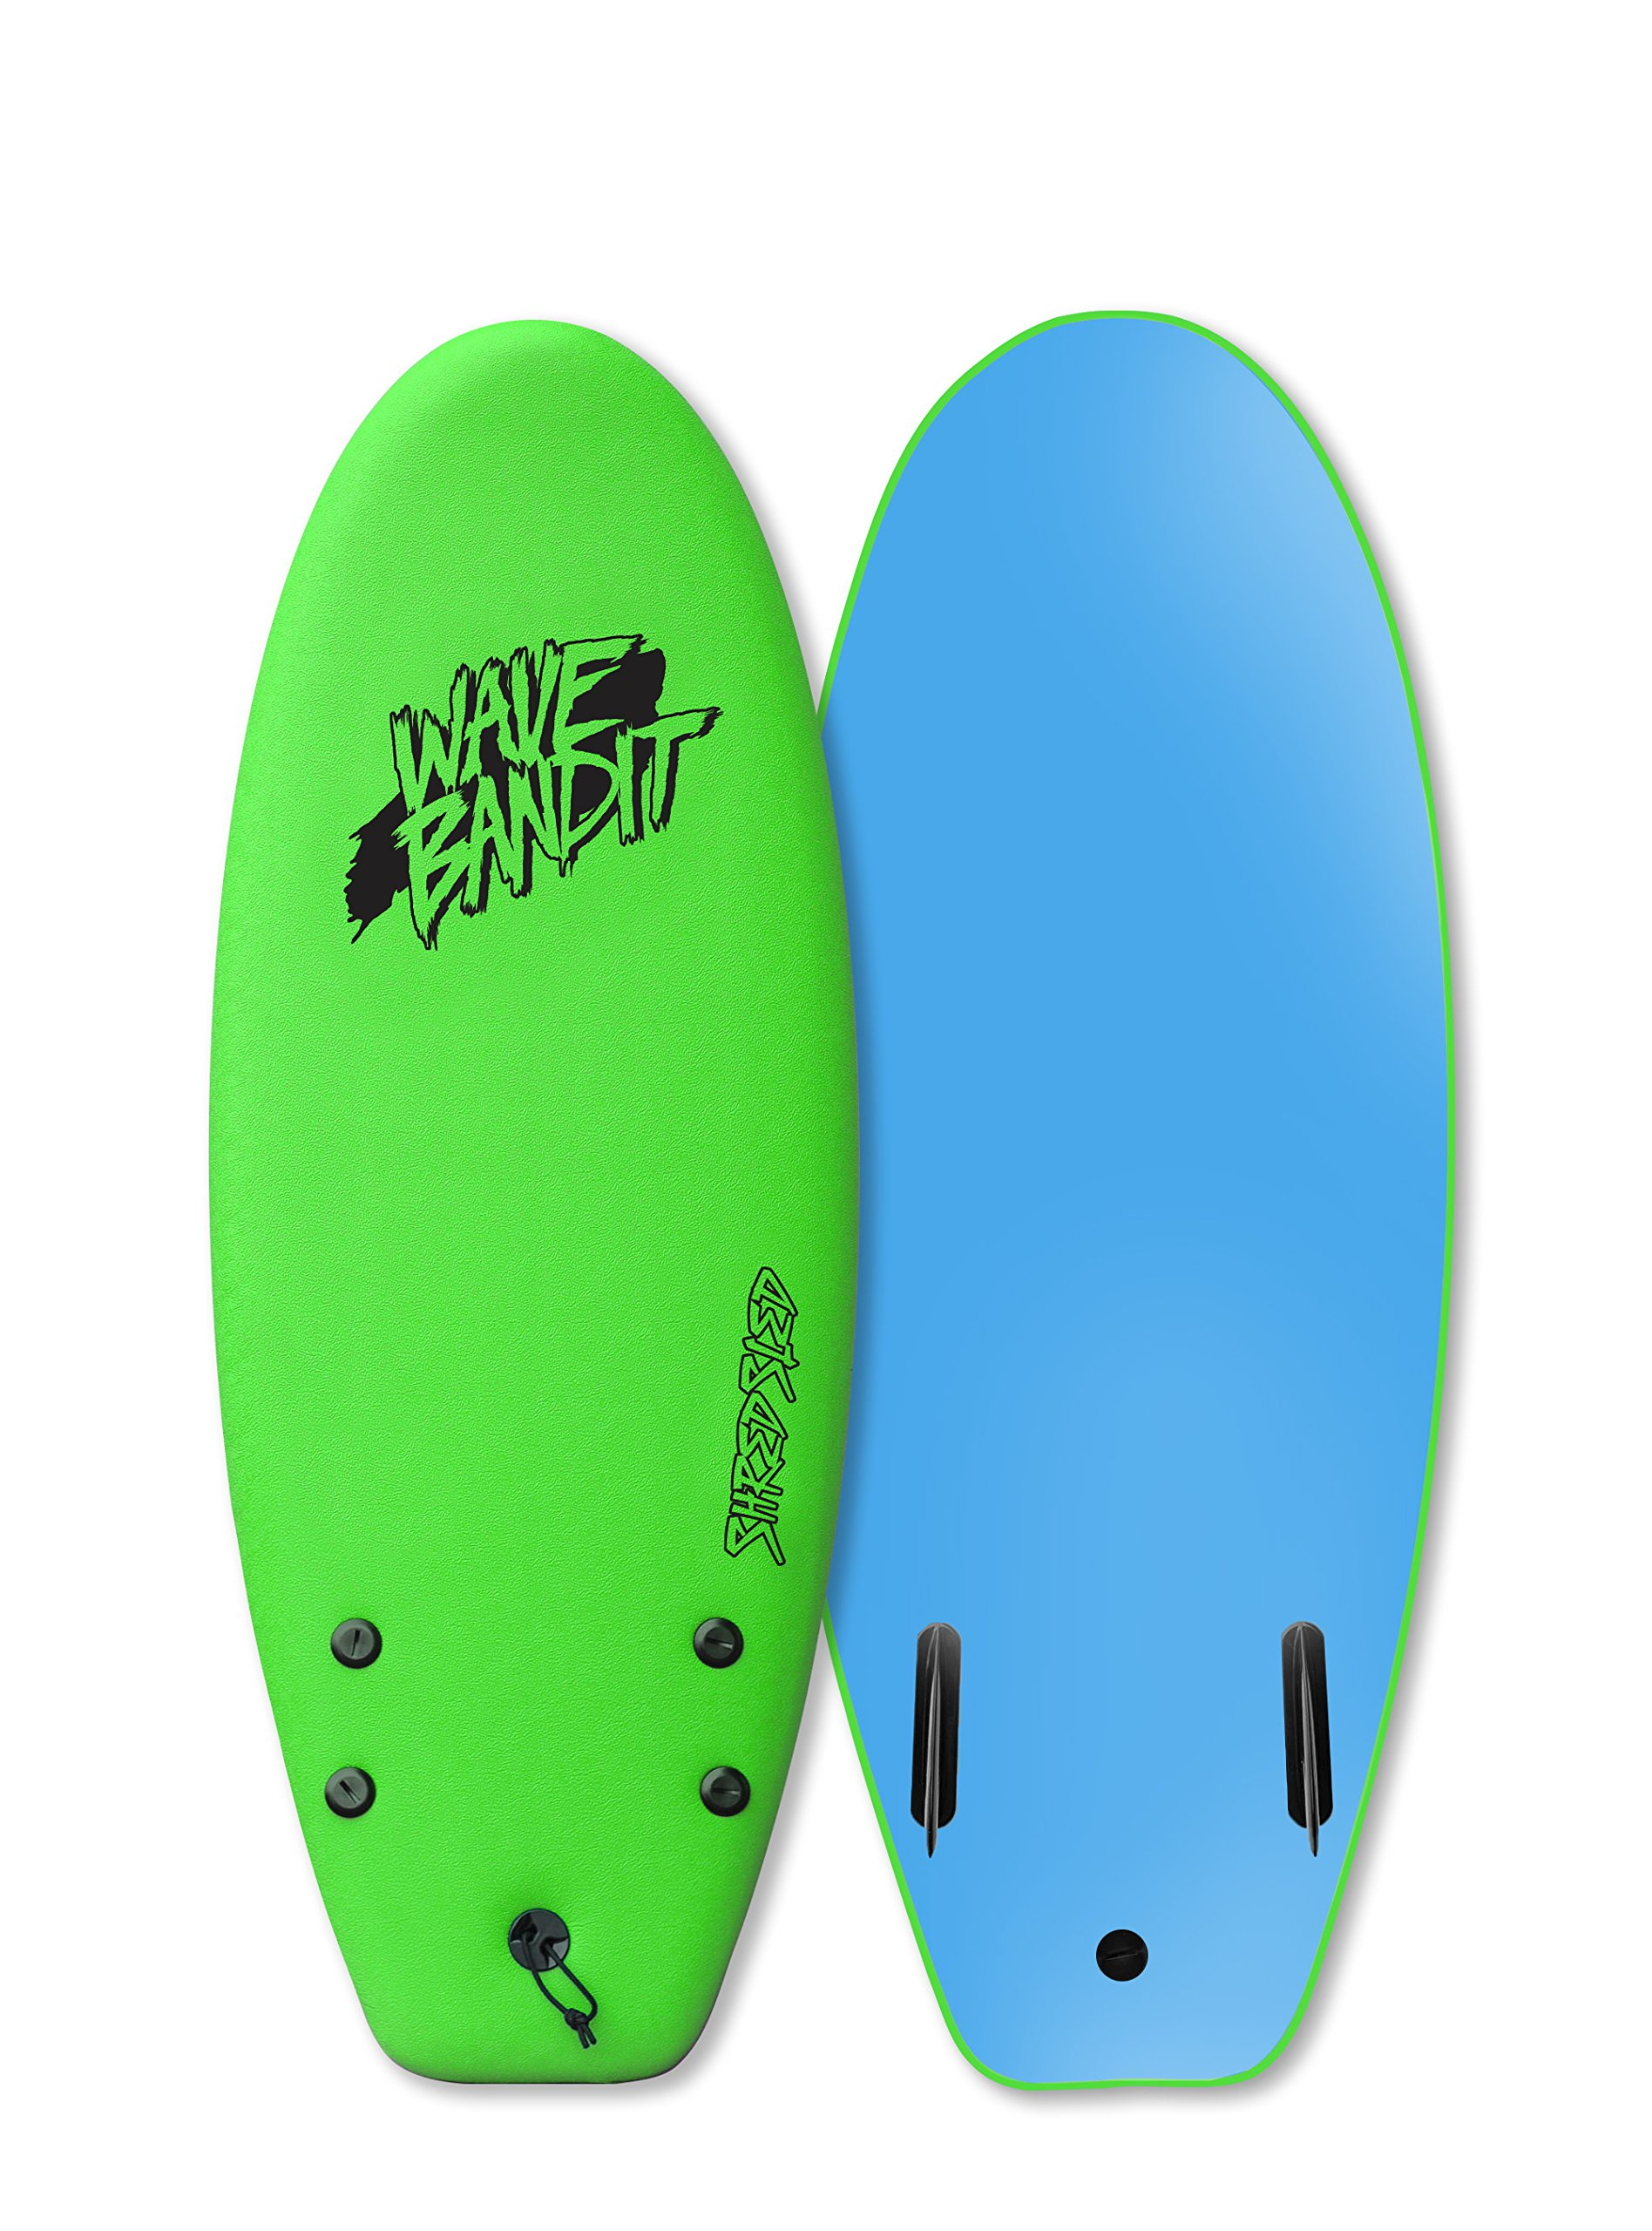 Wave Bandit Shred Sled 48 Twin, Neon Green by Wave Bandit